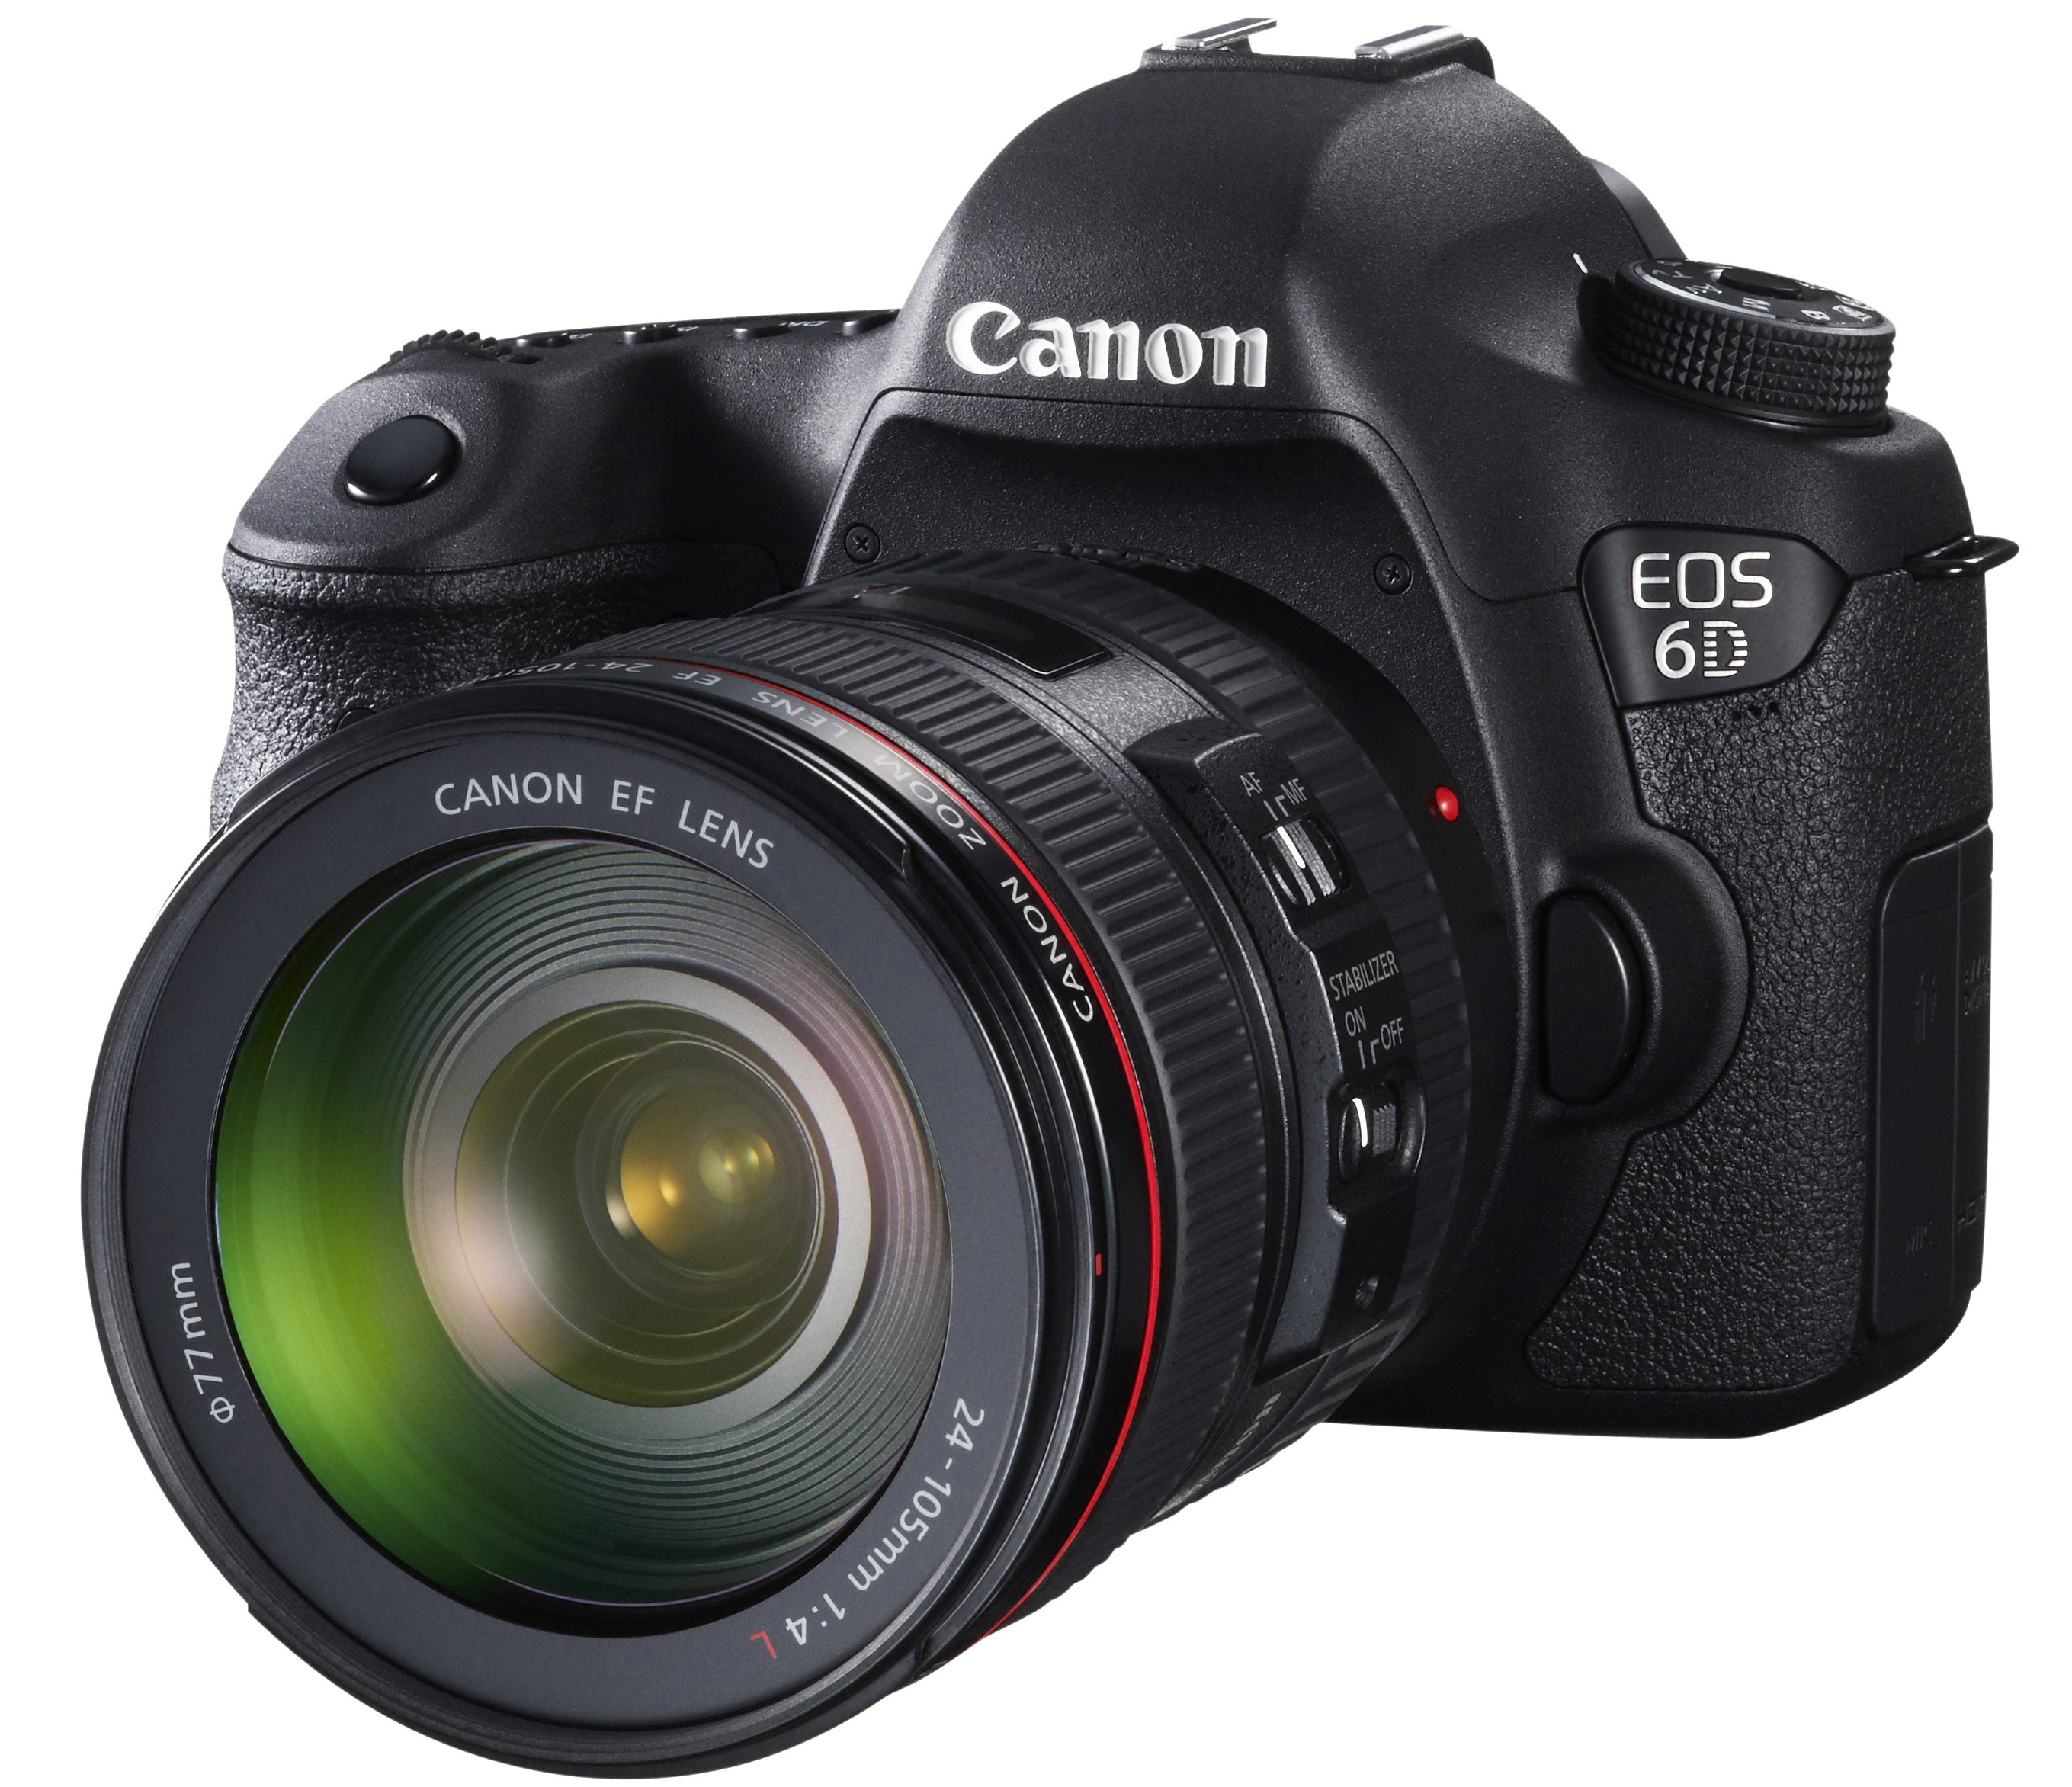 Canon Introduces EOS 6D In India At Rs. 1,66,995/-